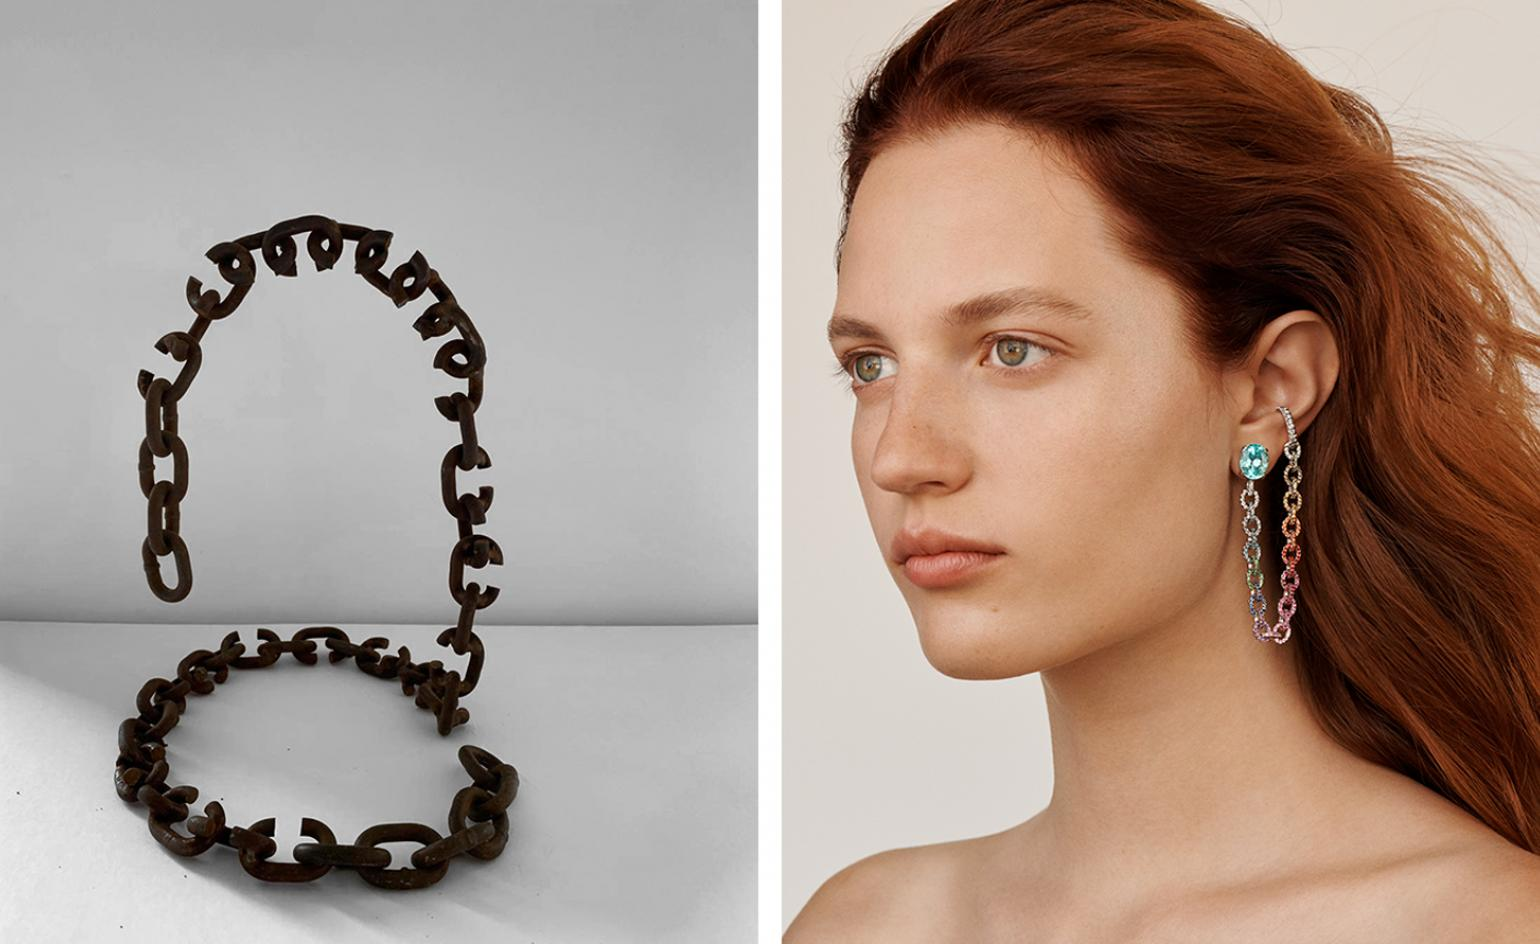 Chain reaction: sculpture and jewellery interconnect as Ana Khouri's designs go on show at Phillips, London